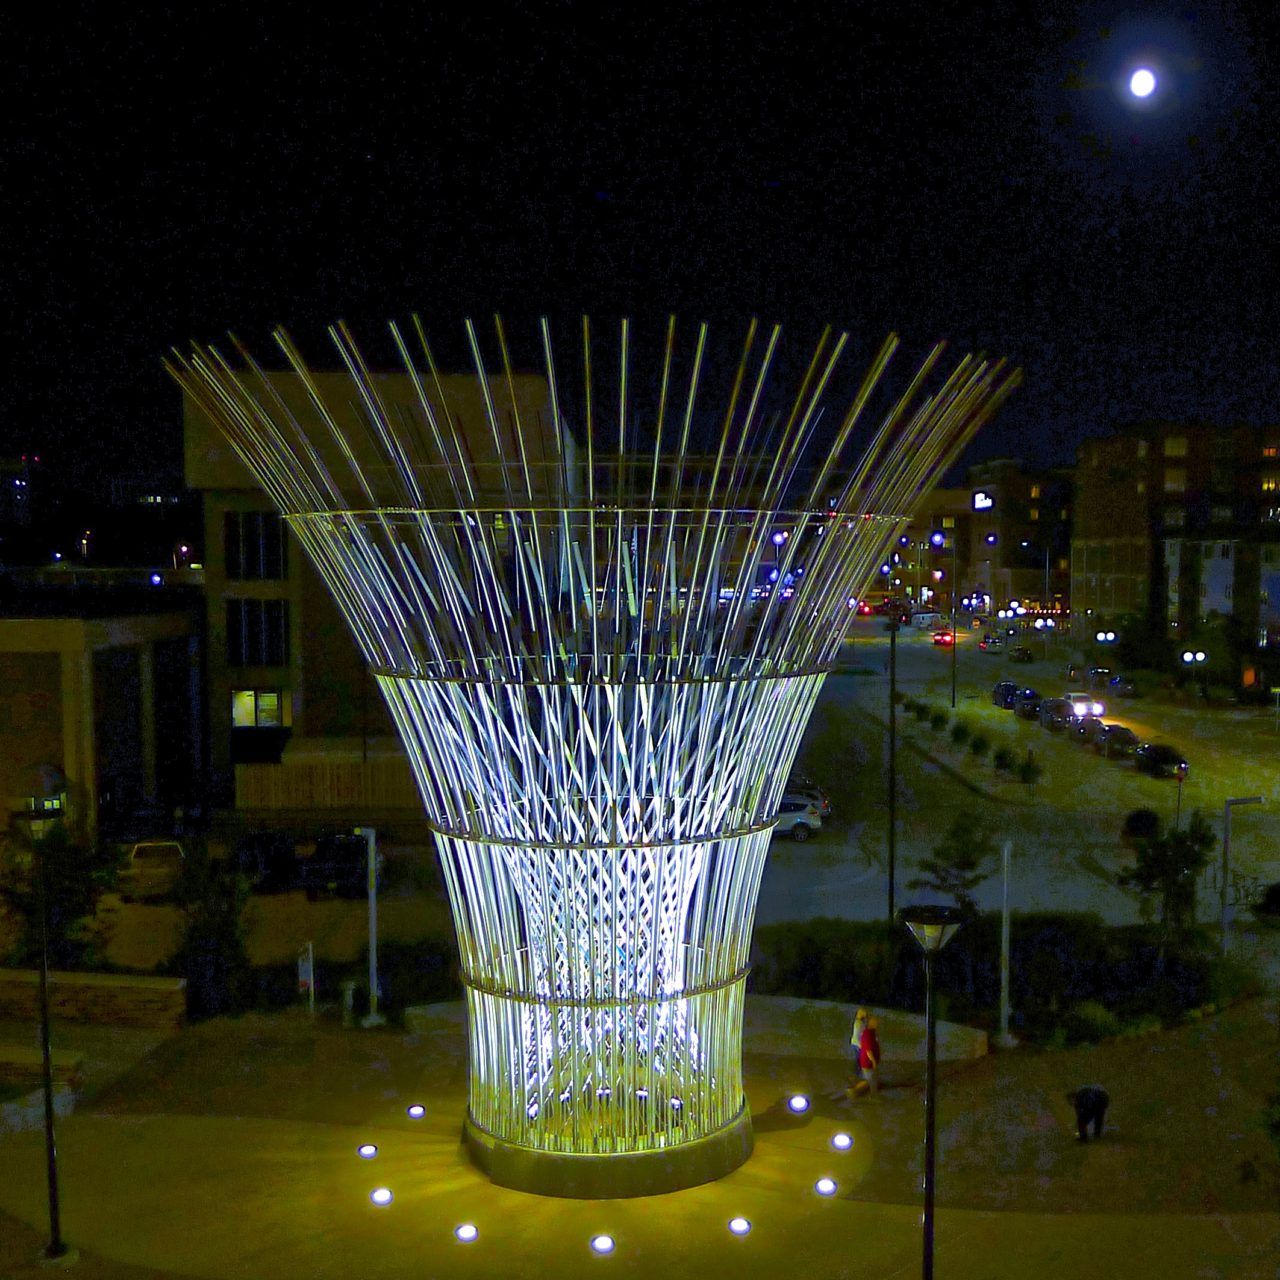 Harvest monumental public sculpture in Lincoln, Nebraska night lighting in the plaza in front of the Pinnacle Bank Arena amplifies the laminated dichroic glass elements crisscrossing in the center of the sculpture. / image 3